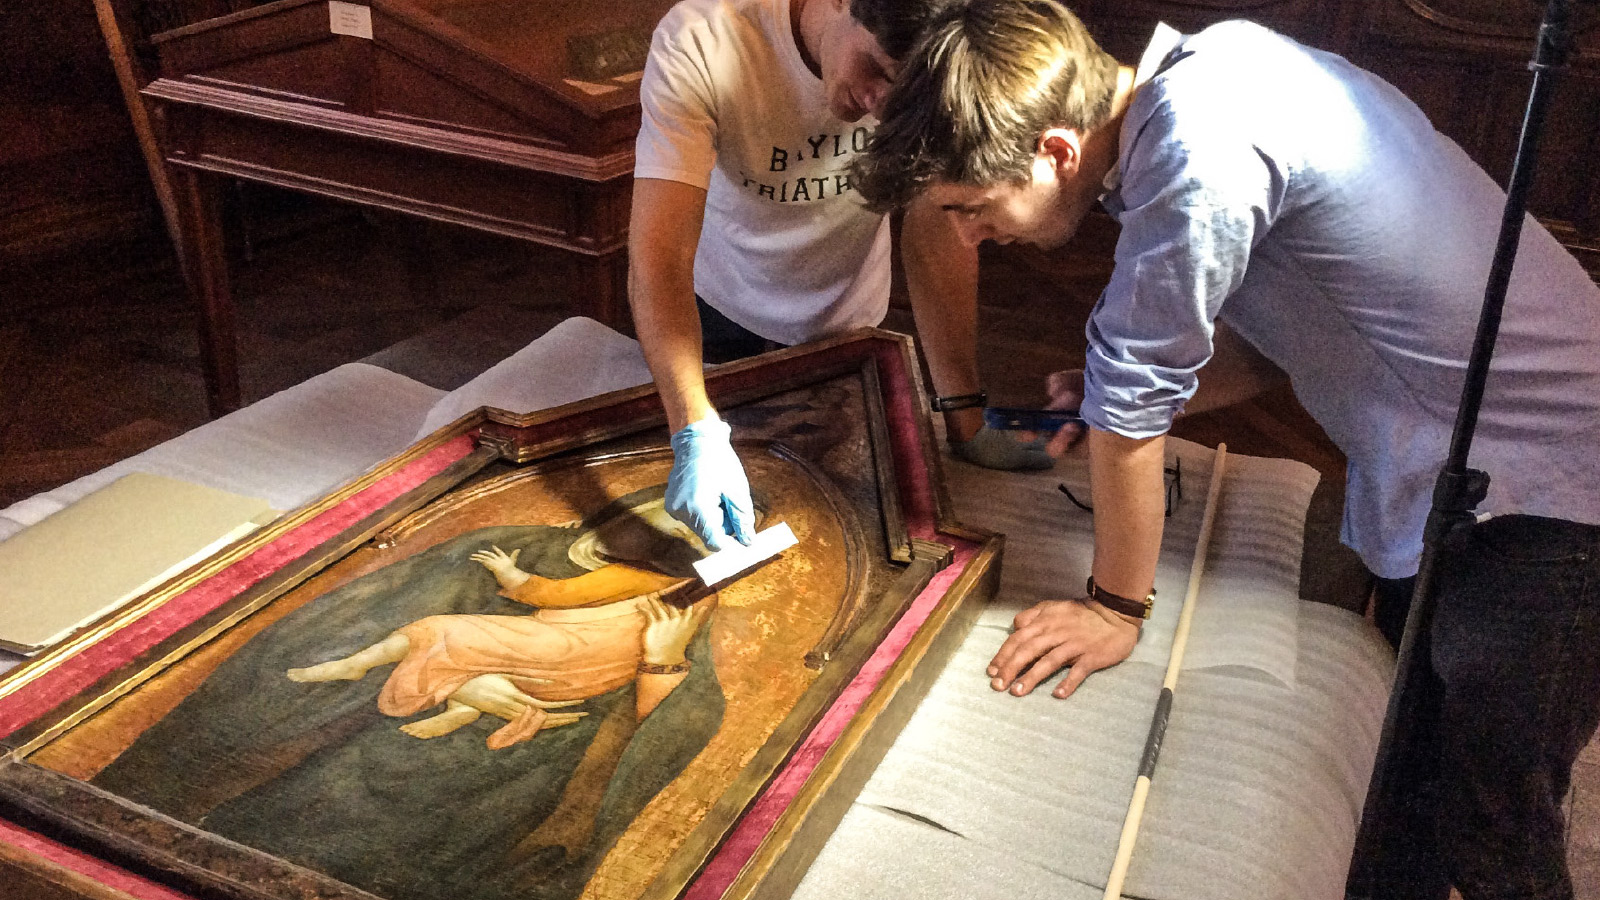 Two University Scholars (Nathan Eberlein, BA '17 and Conner Moncrief, BA '16) examine a 14th-century Madonna and Child painted by a follower of the Sienese artist Pietro Lorenzetti in the Armstrong Browning Library